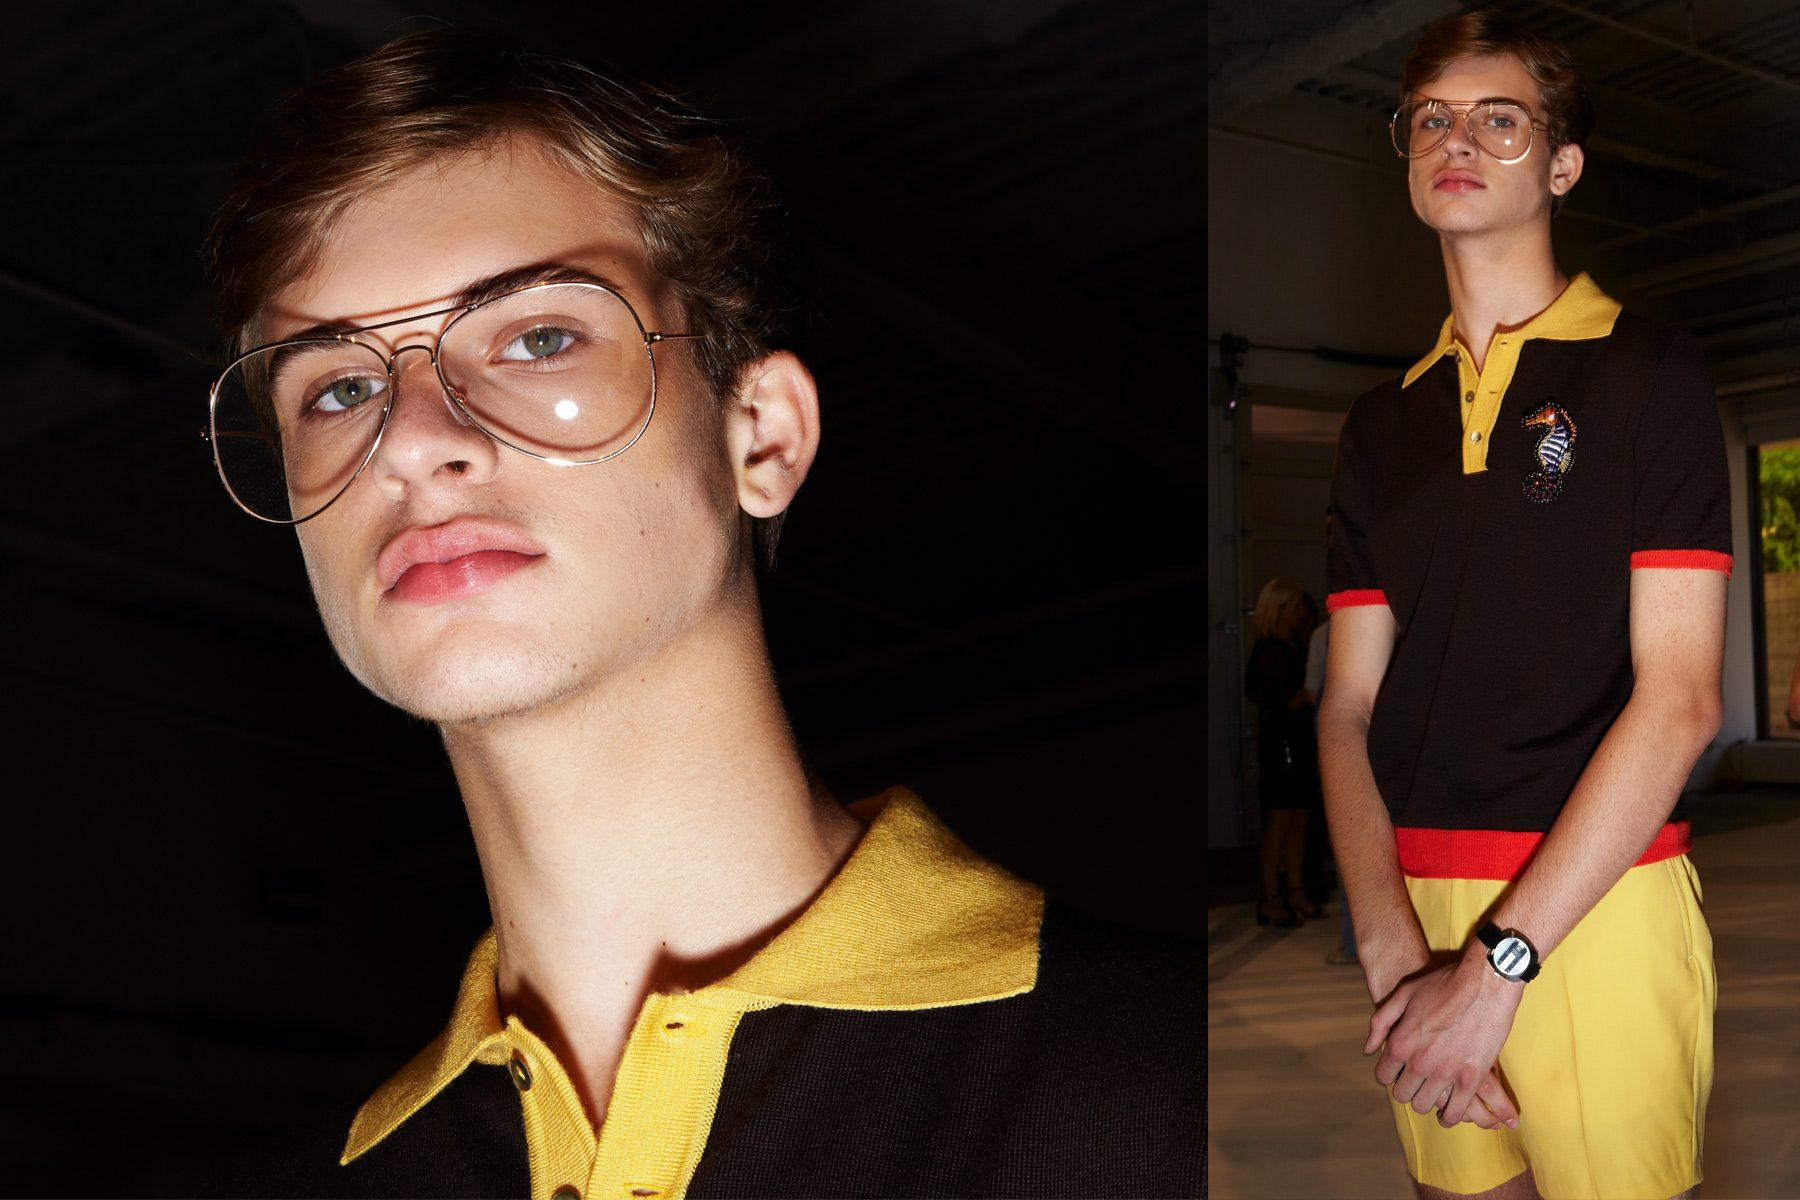 Aiden Marceron at David Hart for Spring/Summer 2019. Photography by Alexander Thompson for Ponyboy magazine.